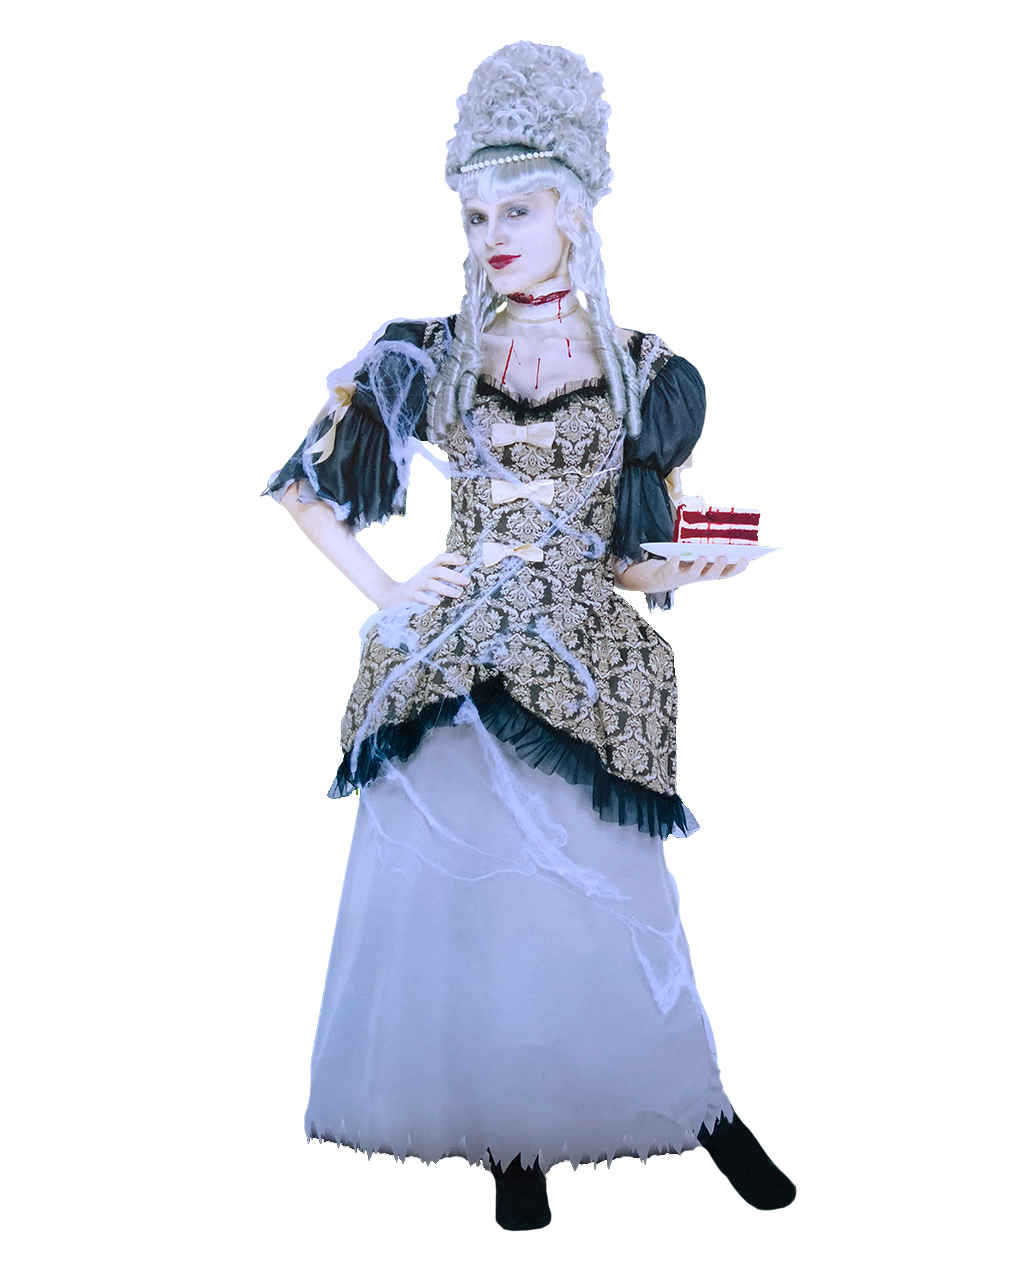 marie antoinette ghost costume s buy historical costumes horror. Black Bedroom Furniture Sets. Home Design Ideas